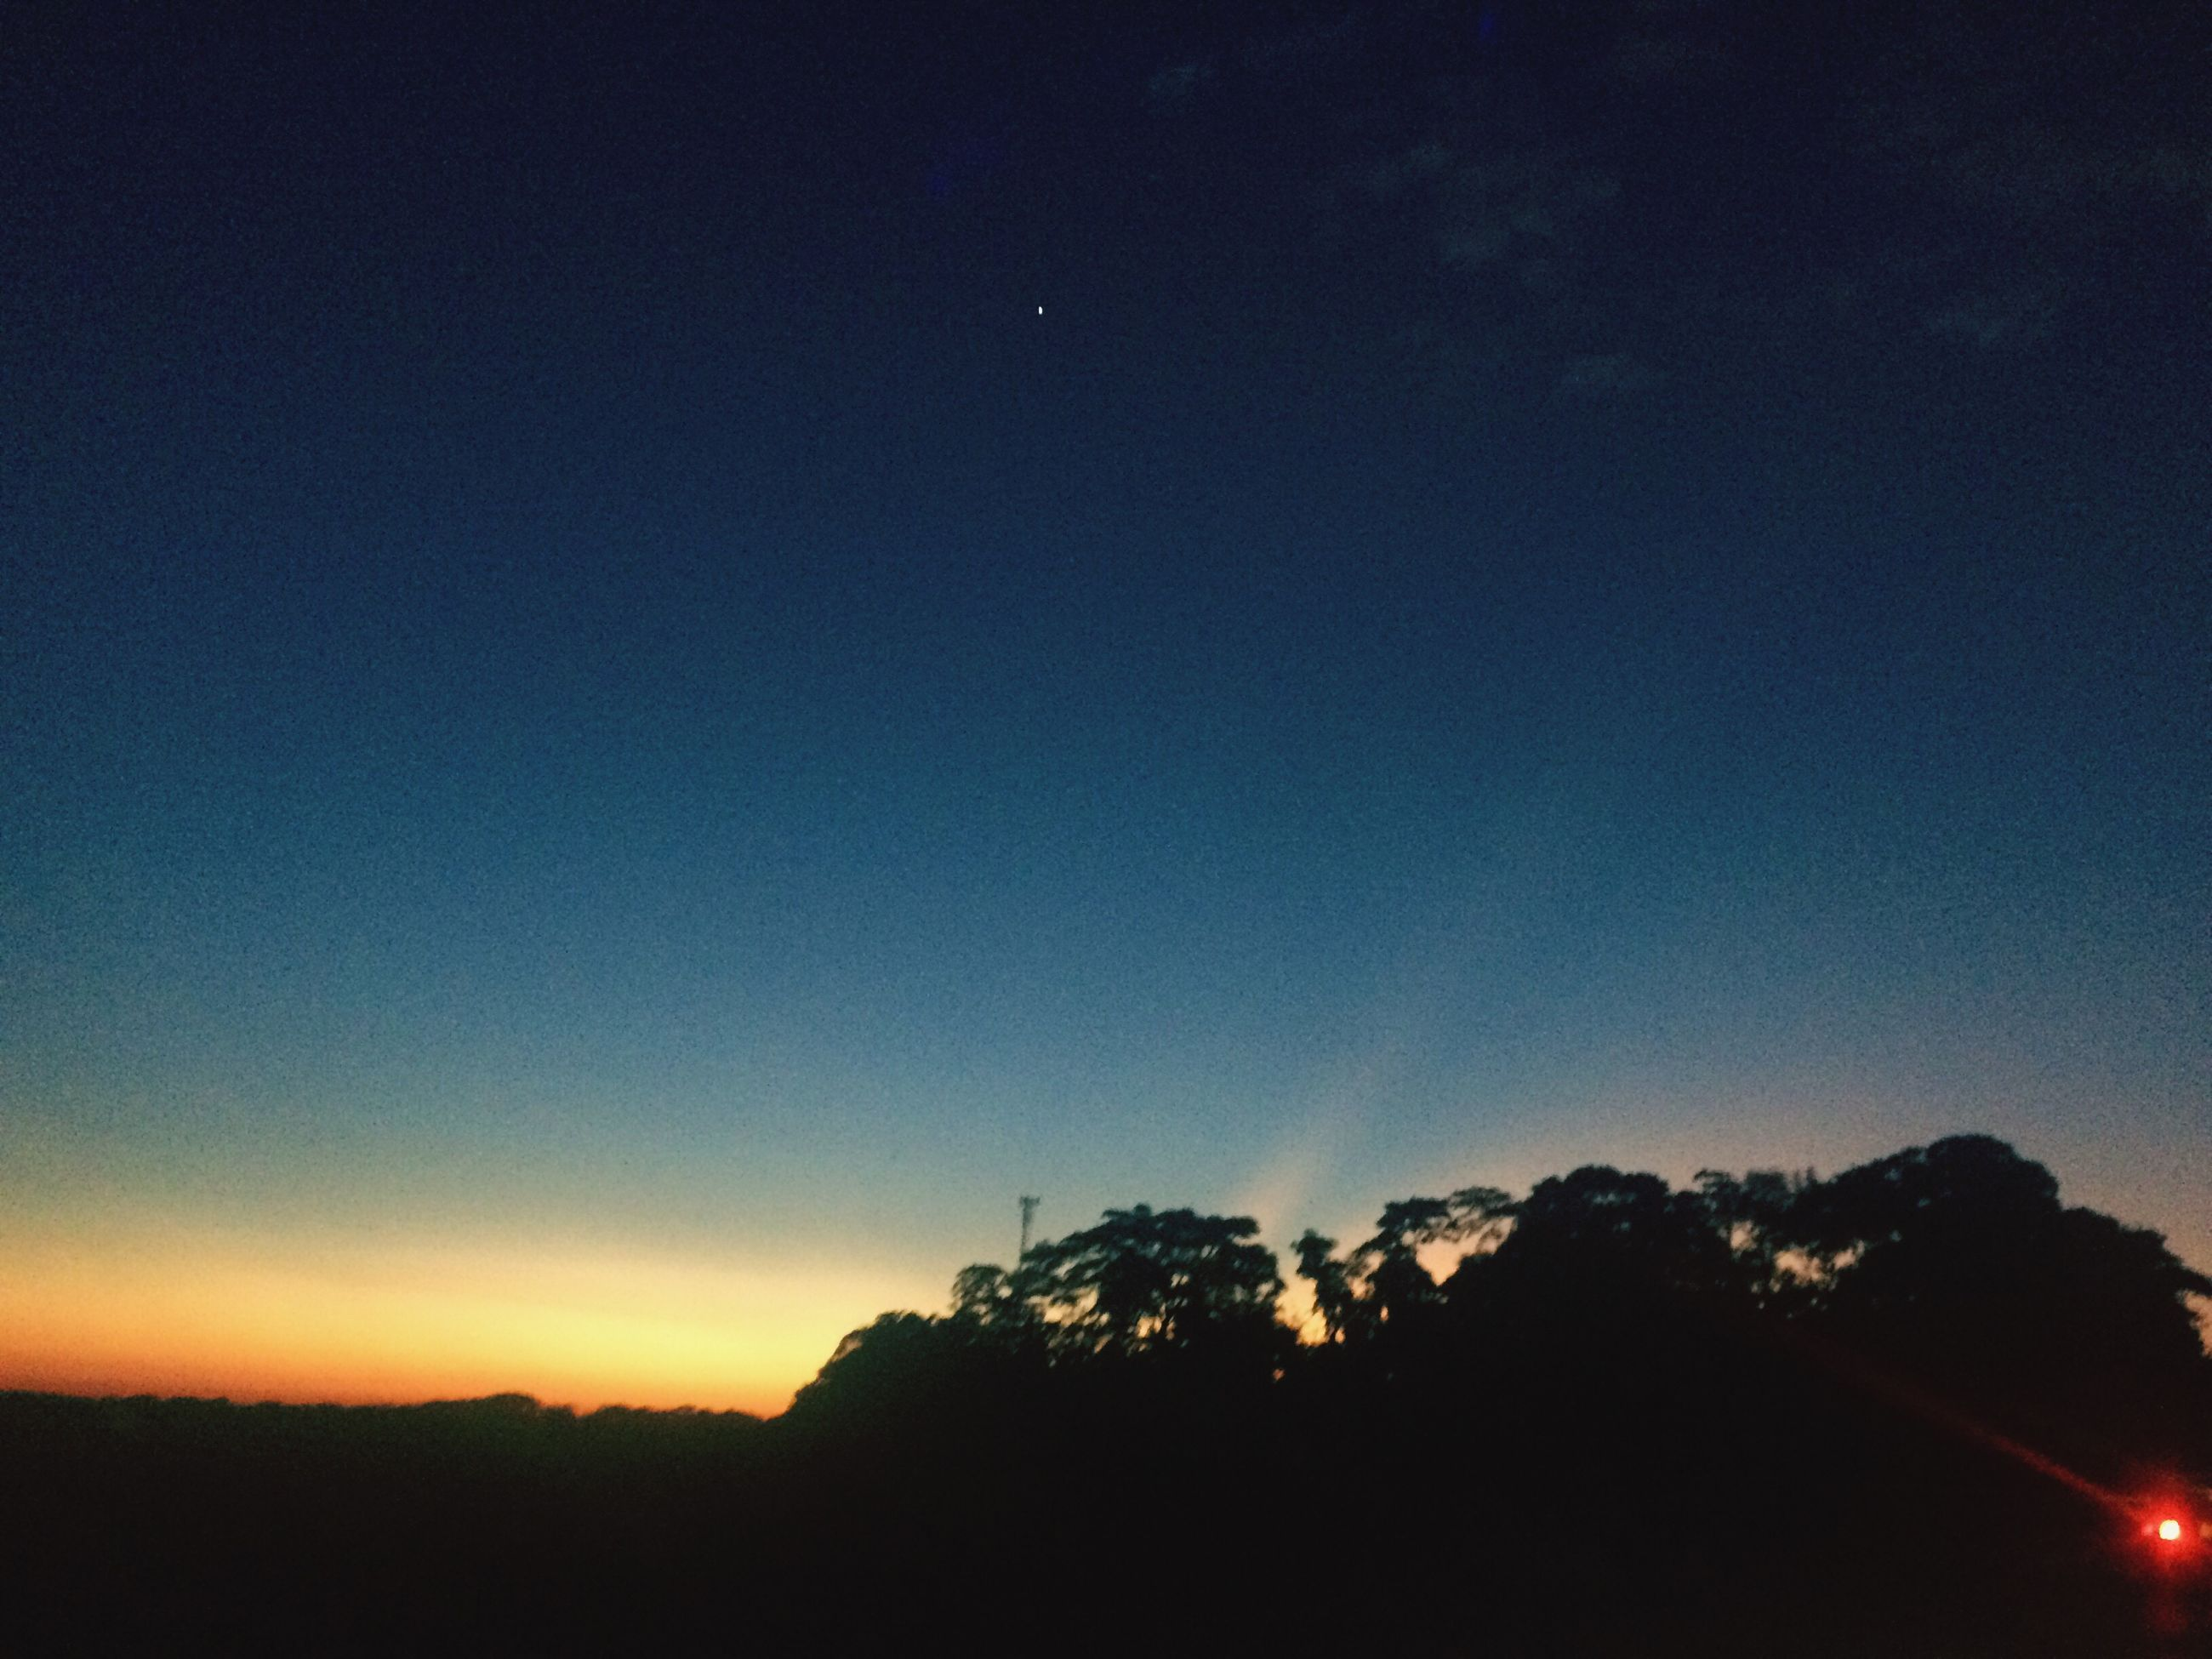 silhouette, nature, tree, sky, night, no people, beauty in nature, tranquility, scenics, blue, tranquil scene, outdoors, clear sky, low angle view, sunset